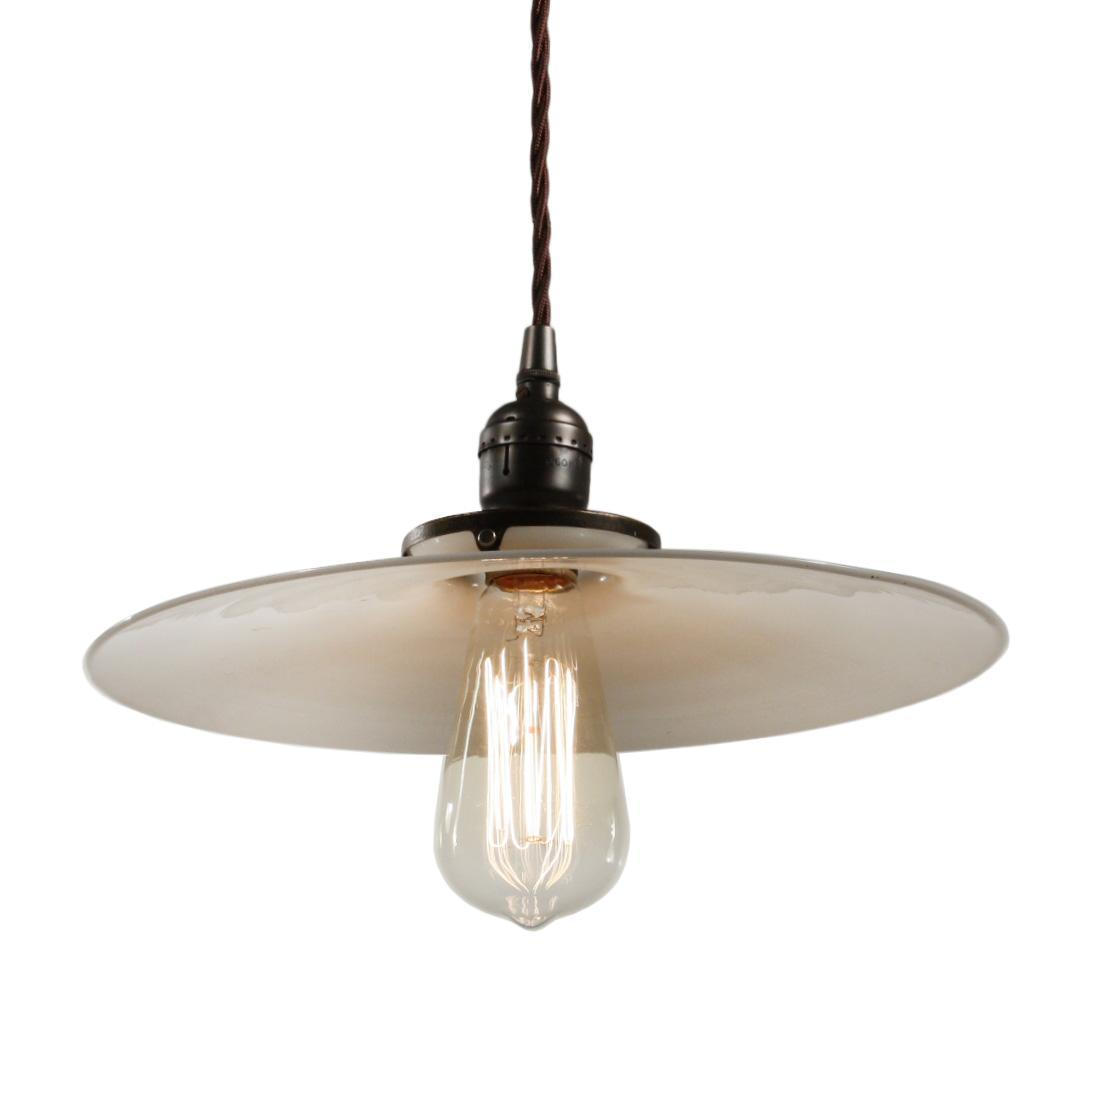 Antique Industrial Pendant Light with Milk Glass Shade, c. 1910